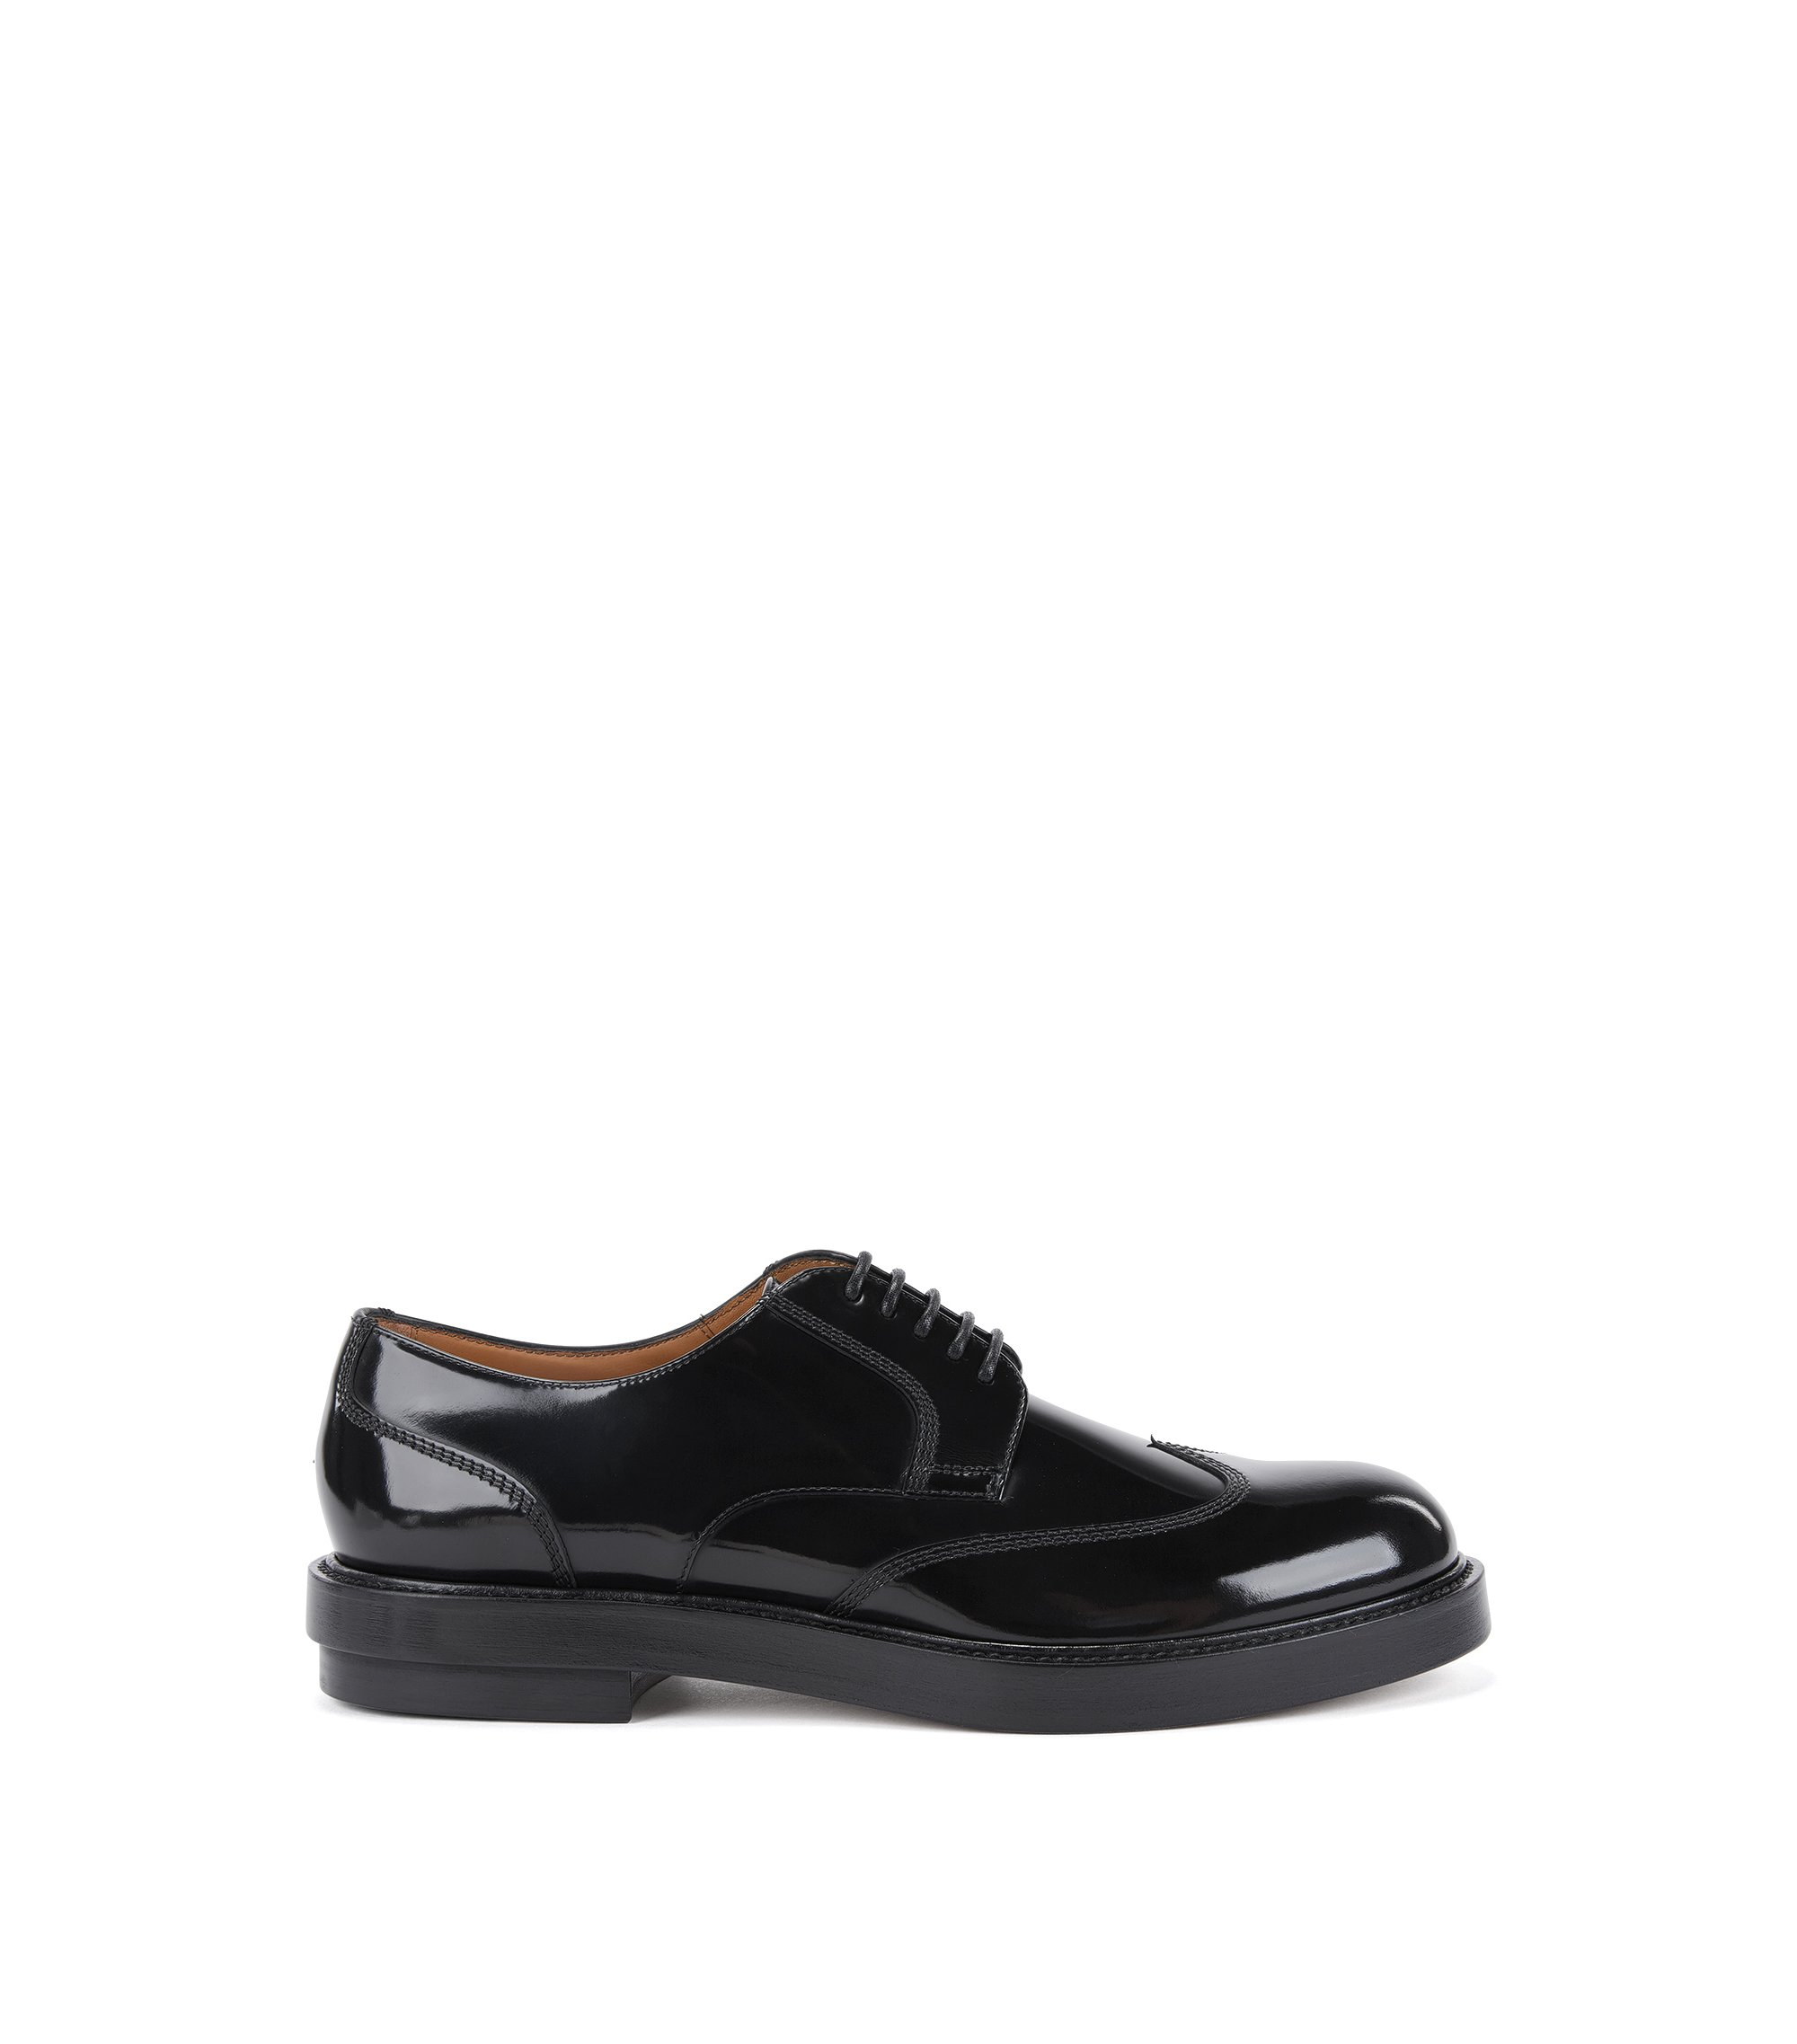 Wingtip Derby shoes in brush-off leather, Black